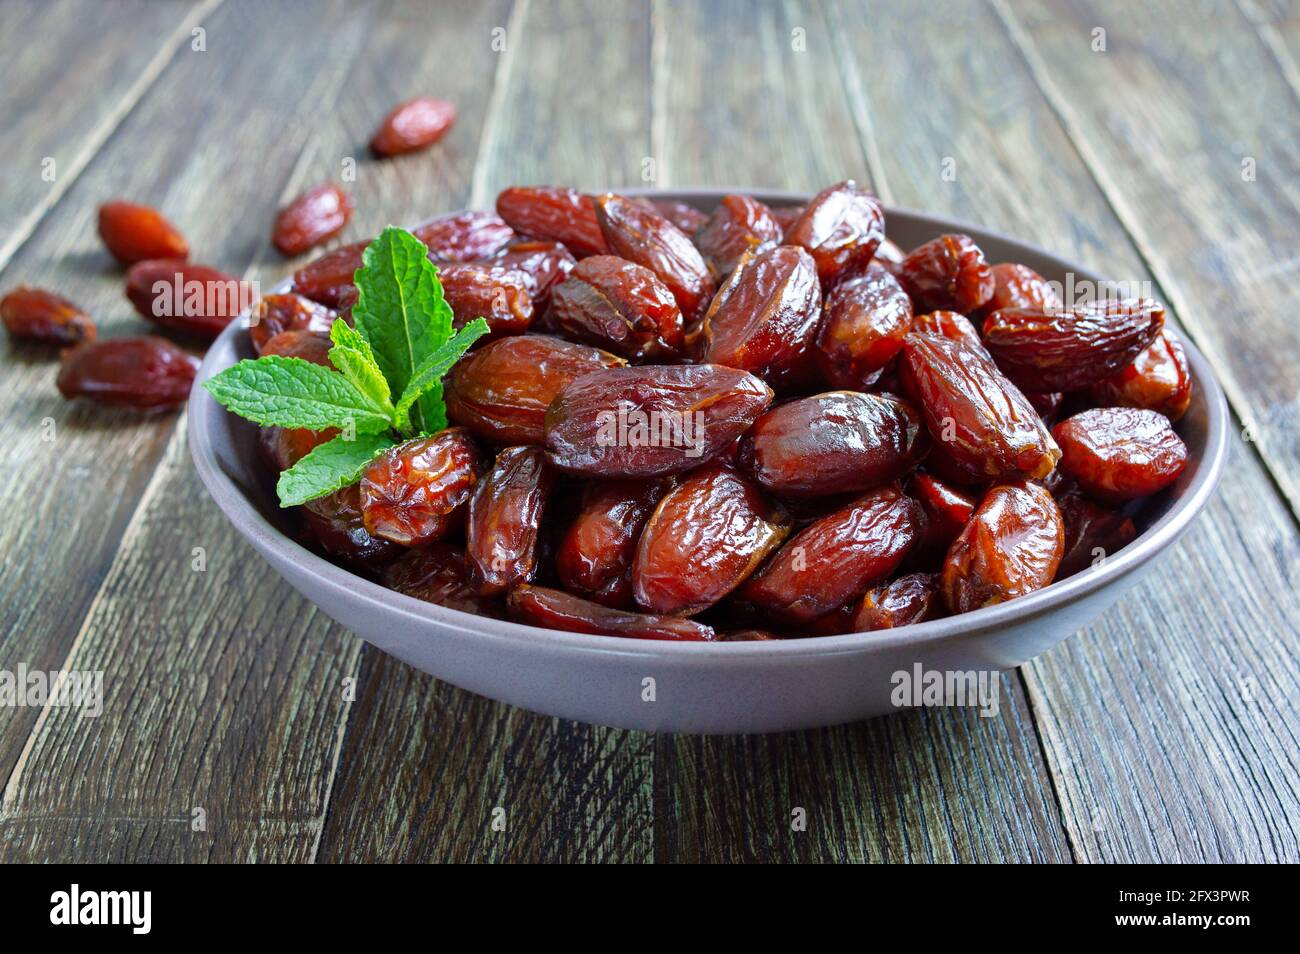 Sun-dried dates in a ceramic bowl and fruits scattered on a wooden table. Organic dried fruits. Stock Photo